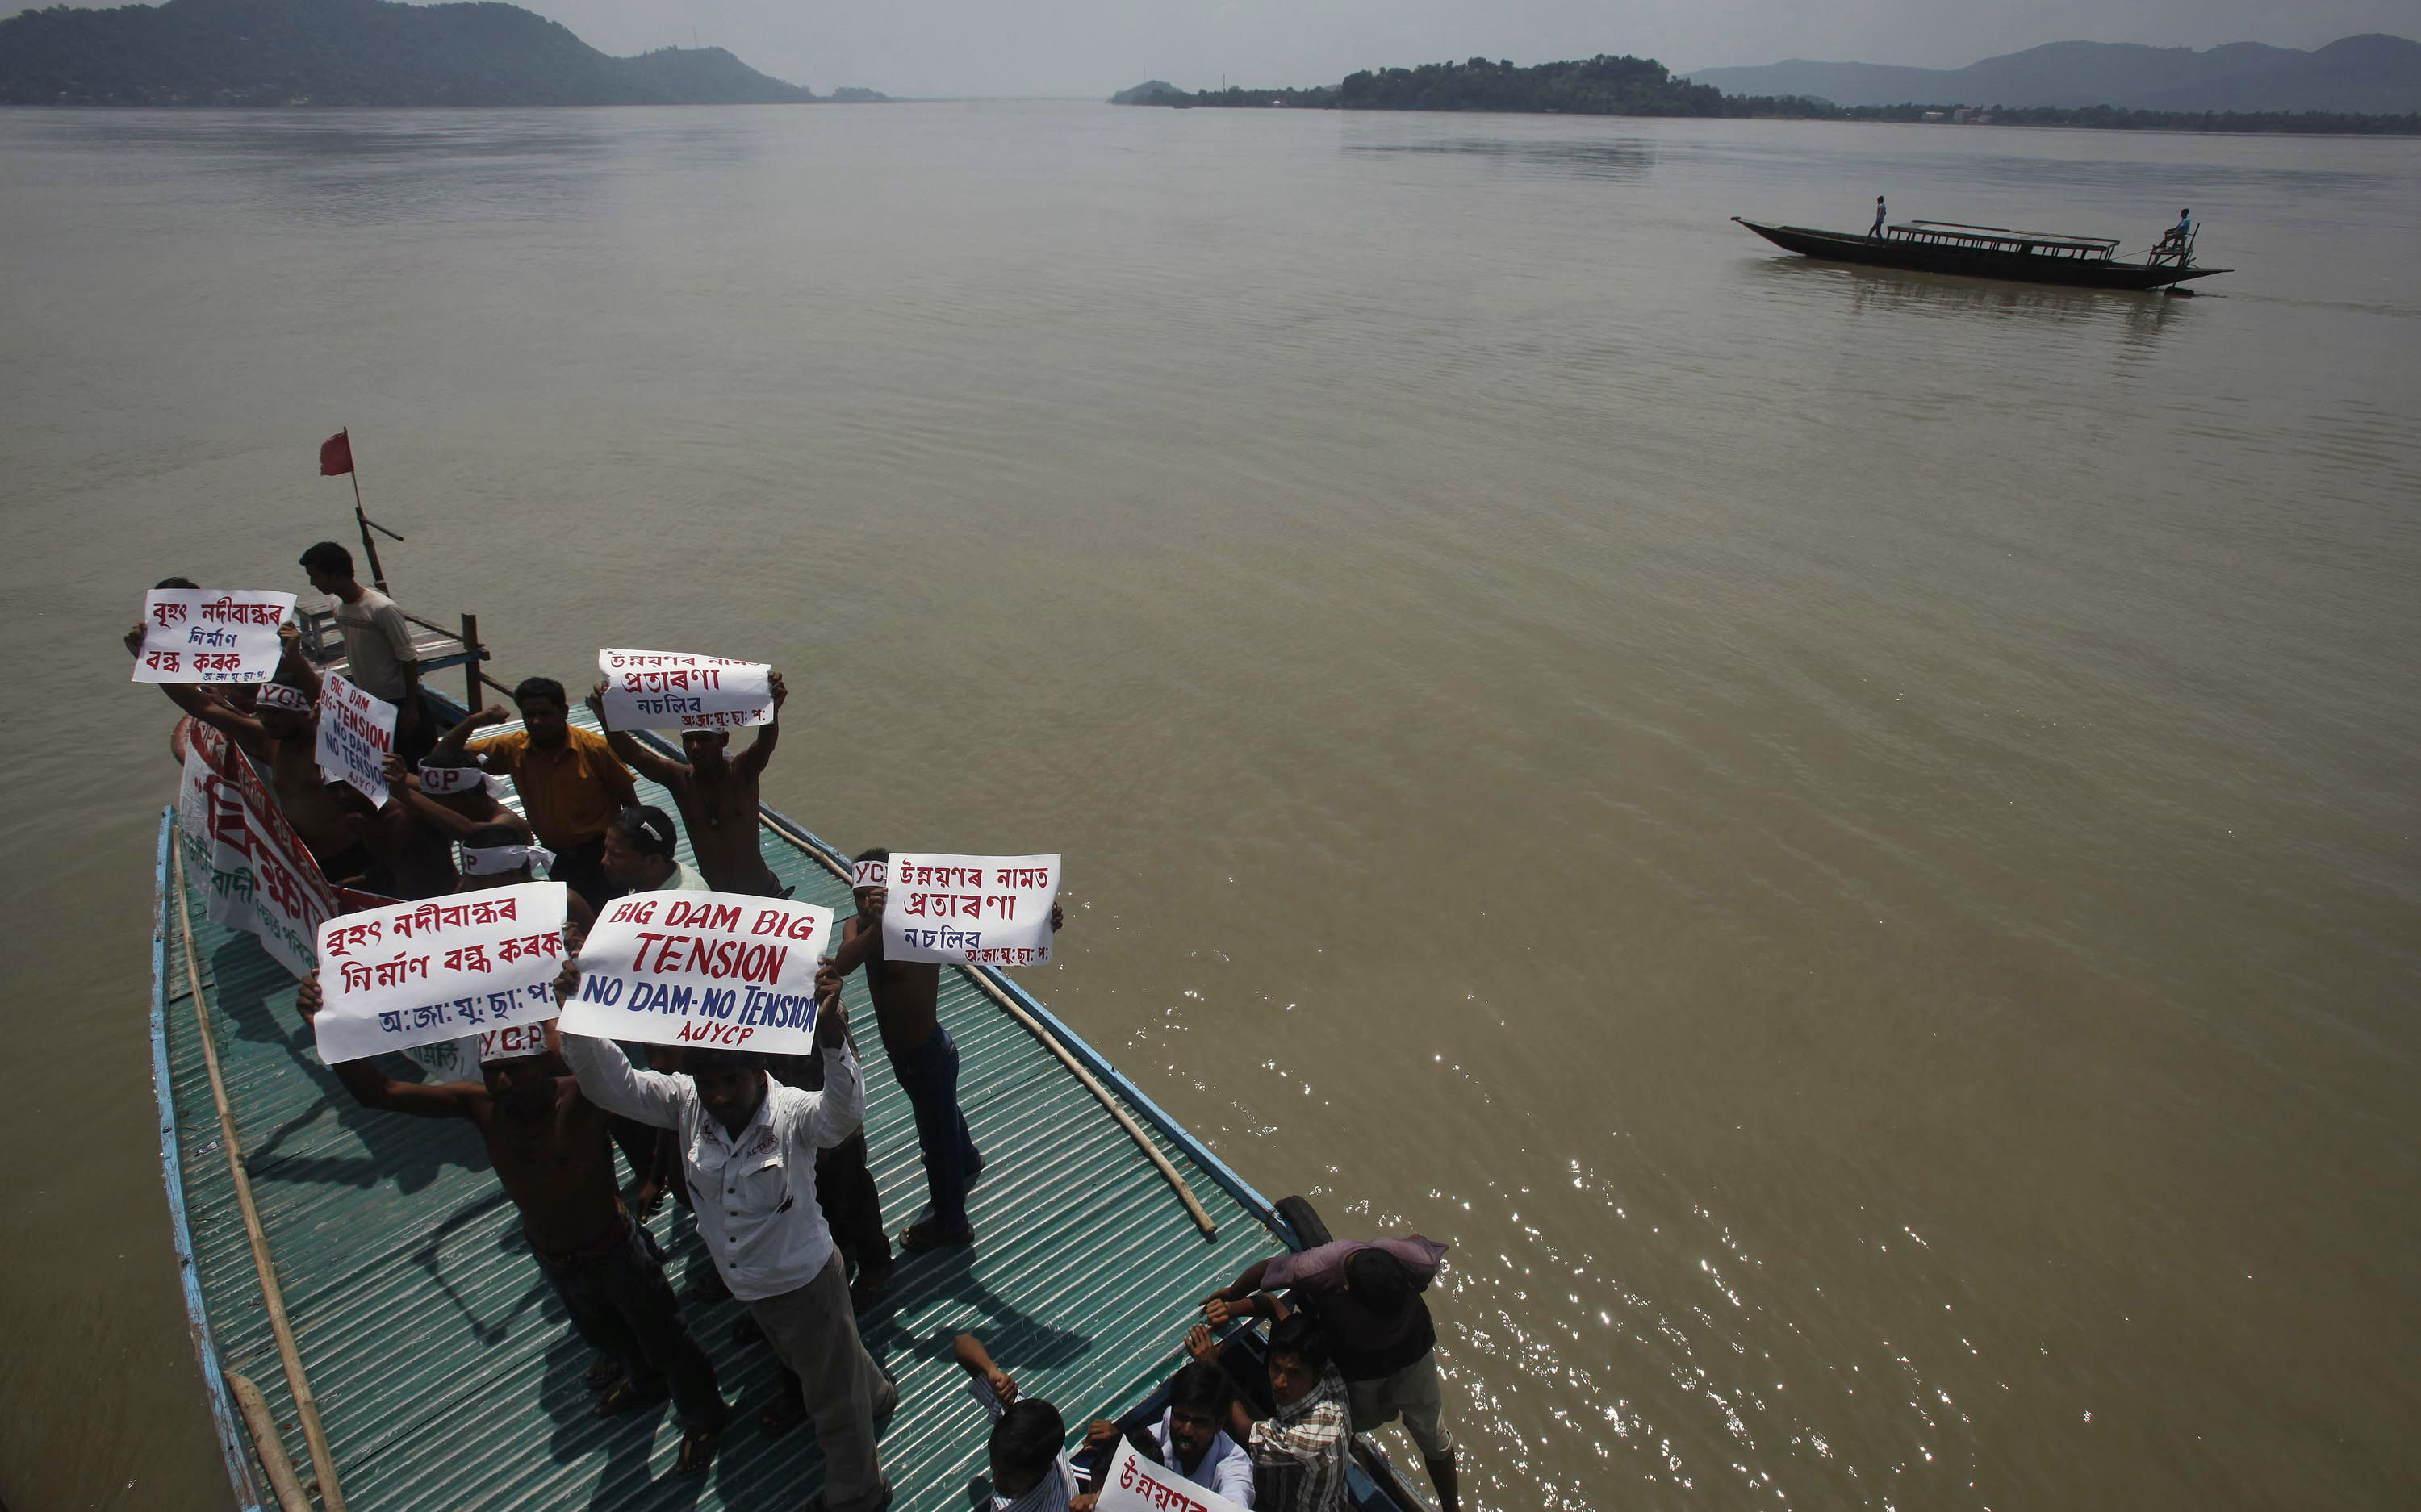 India Dam Protest, Gauhati, India